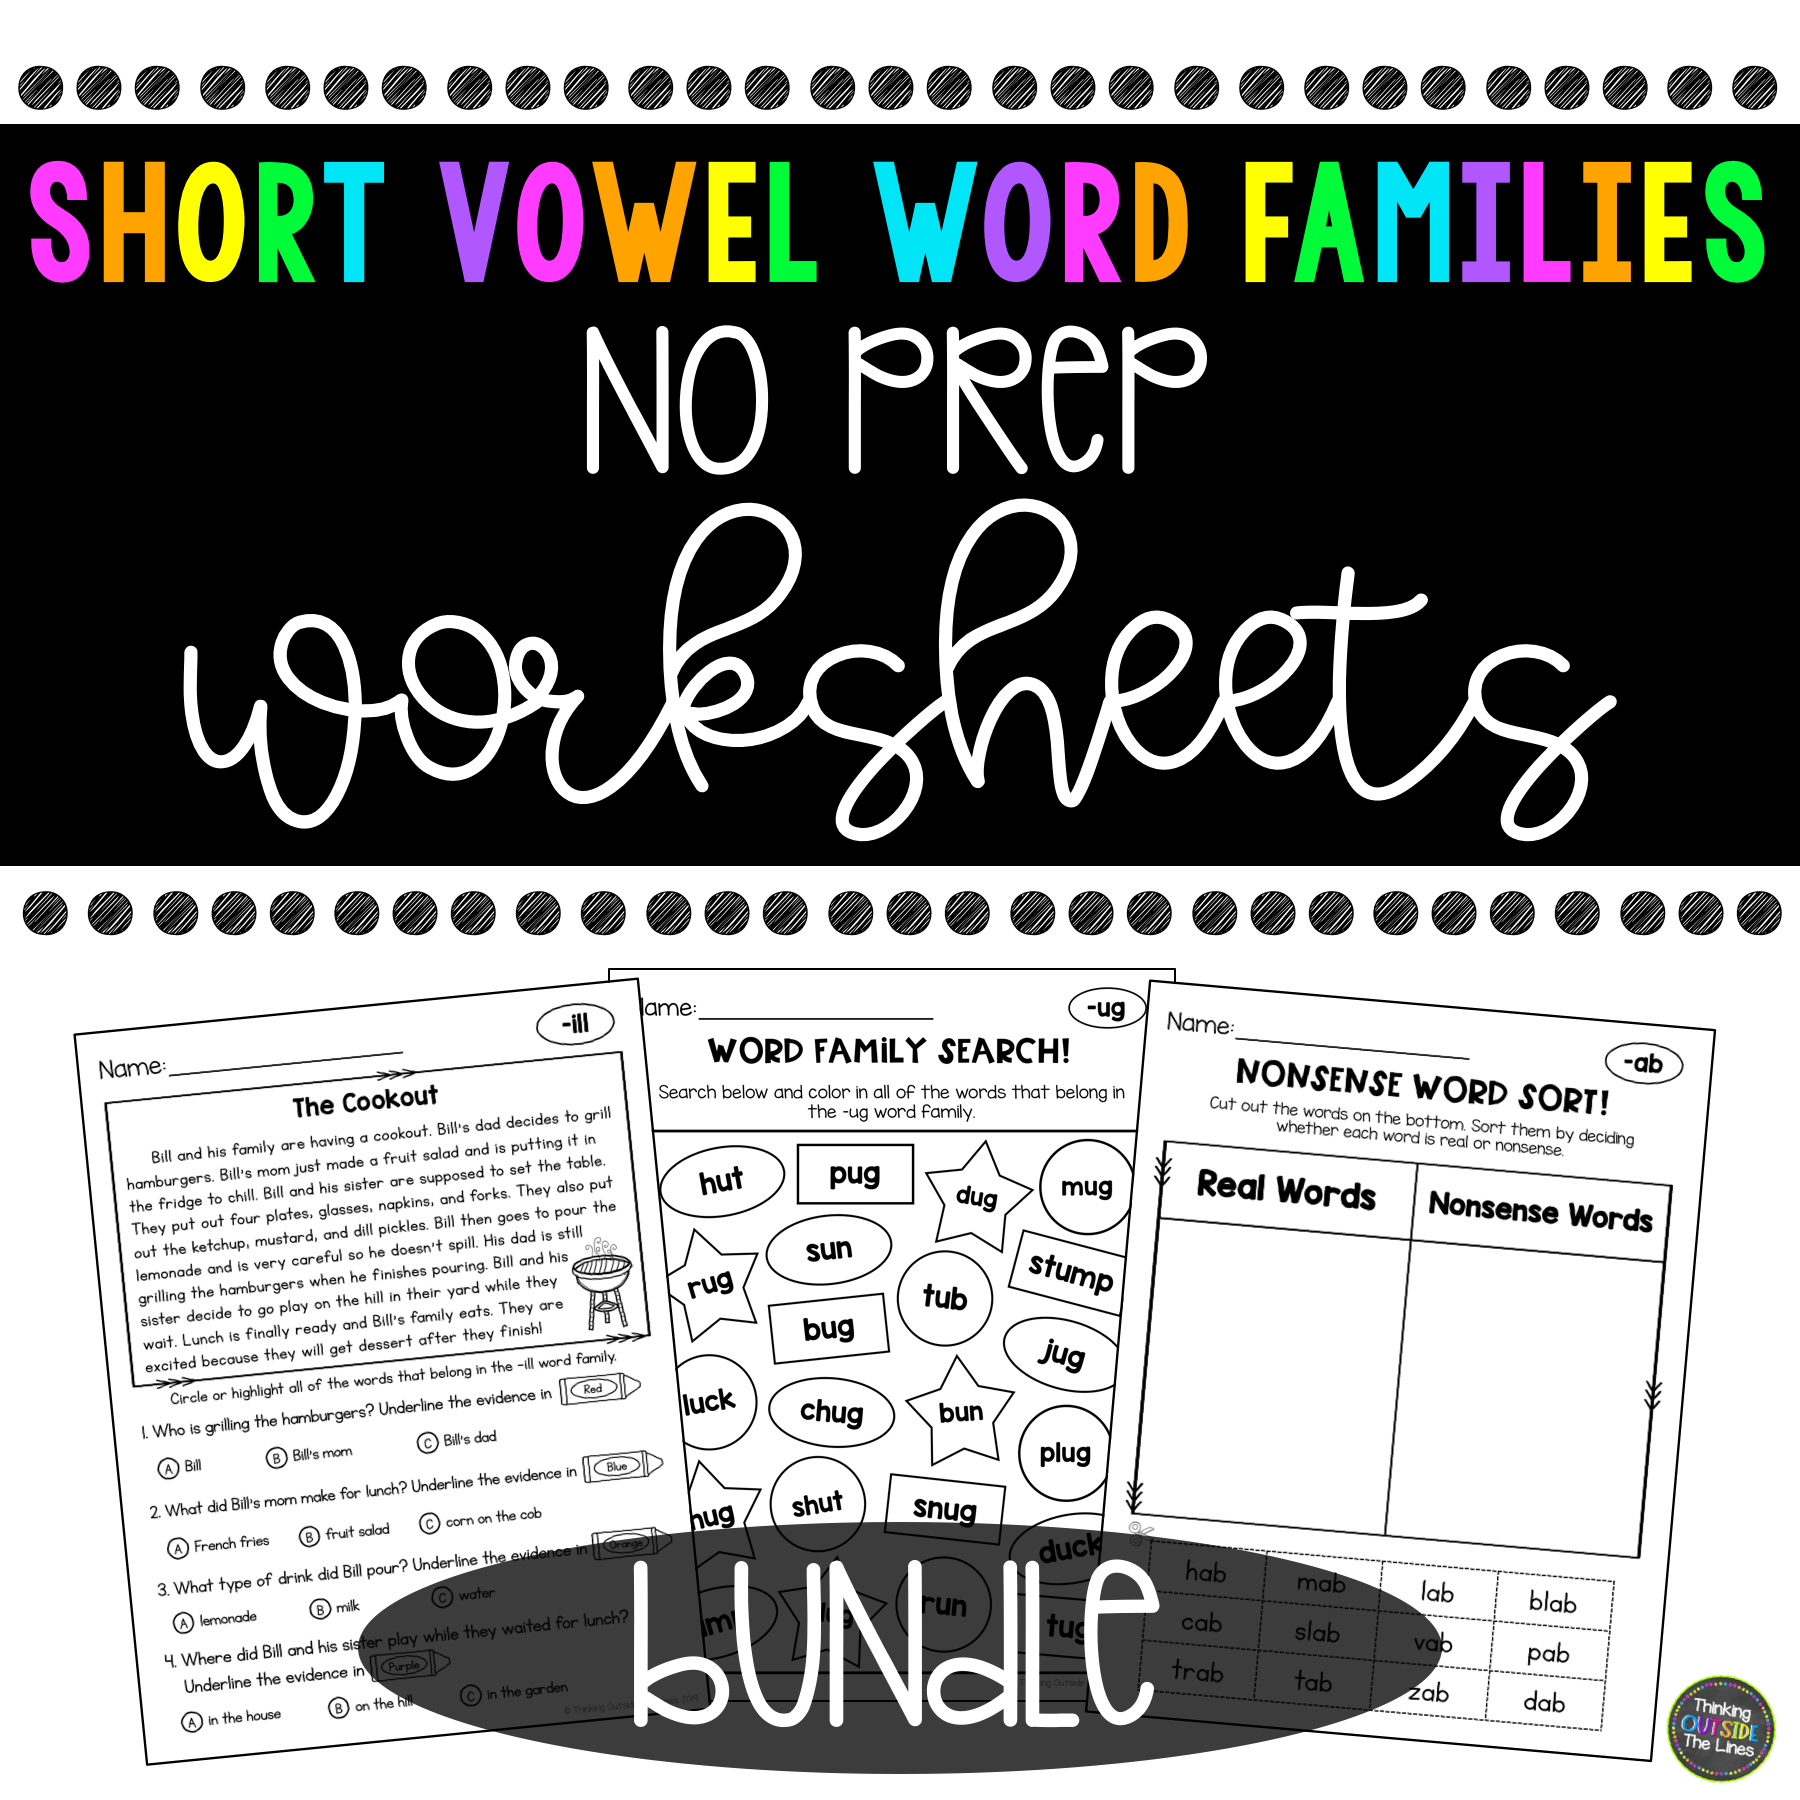 Short Vowel Word Family No Prep Worksheet Bundle